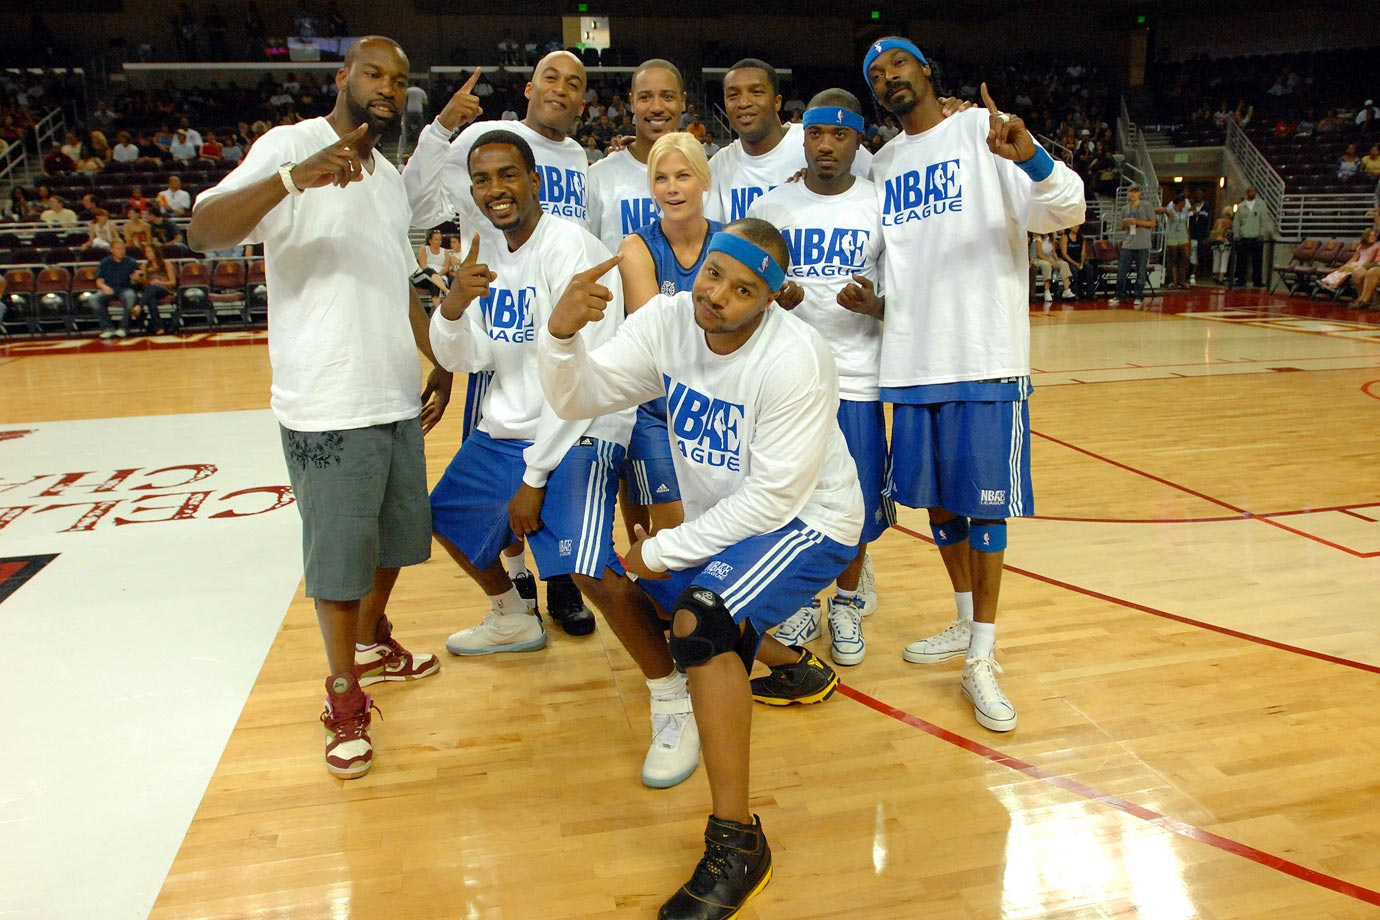 Baron Davis, Bill Bellamy, James Lesure, Alison Sweeney, Donald Faison, Roger Cross, Ray J and Snoop Dogg pose for a picture before they play in the LA Stars Celebrity All-Star Game on Aug. 5, 2007 at the USC Galen Center in Los Angeles.